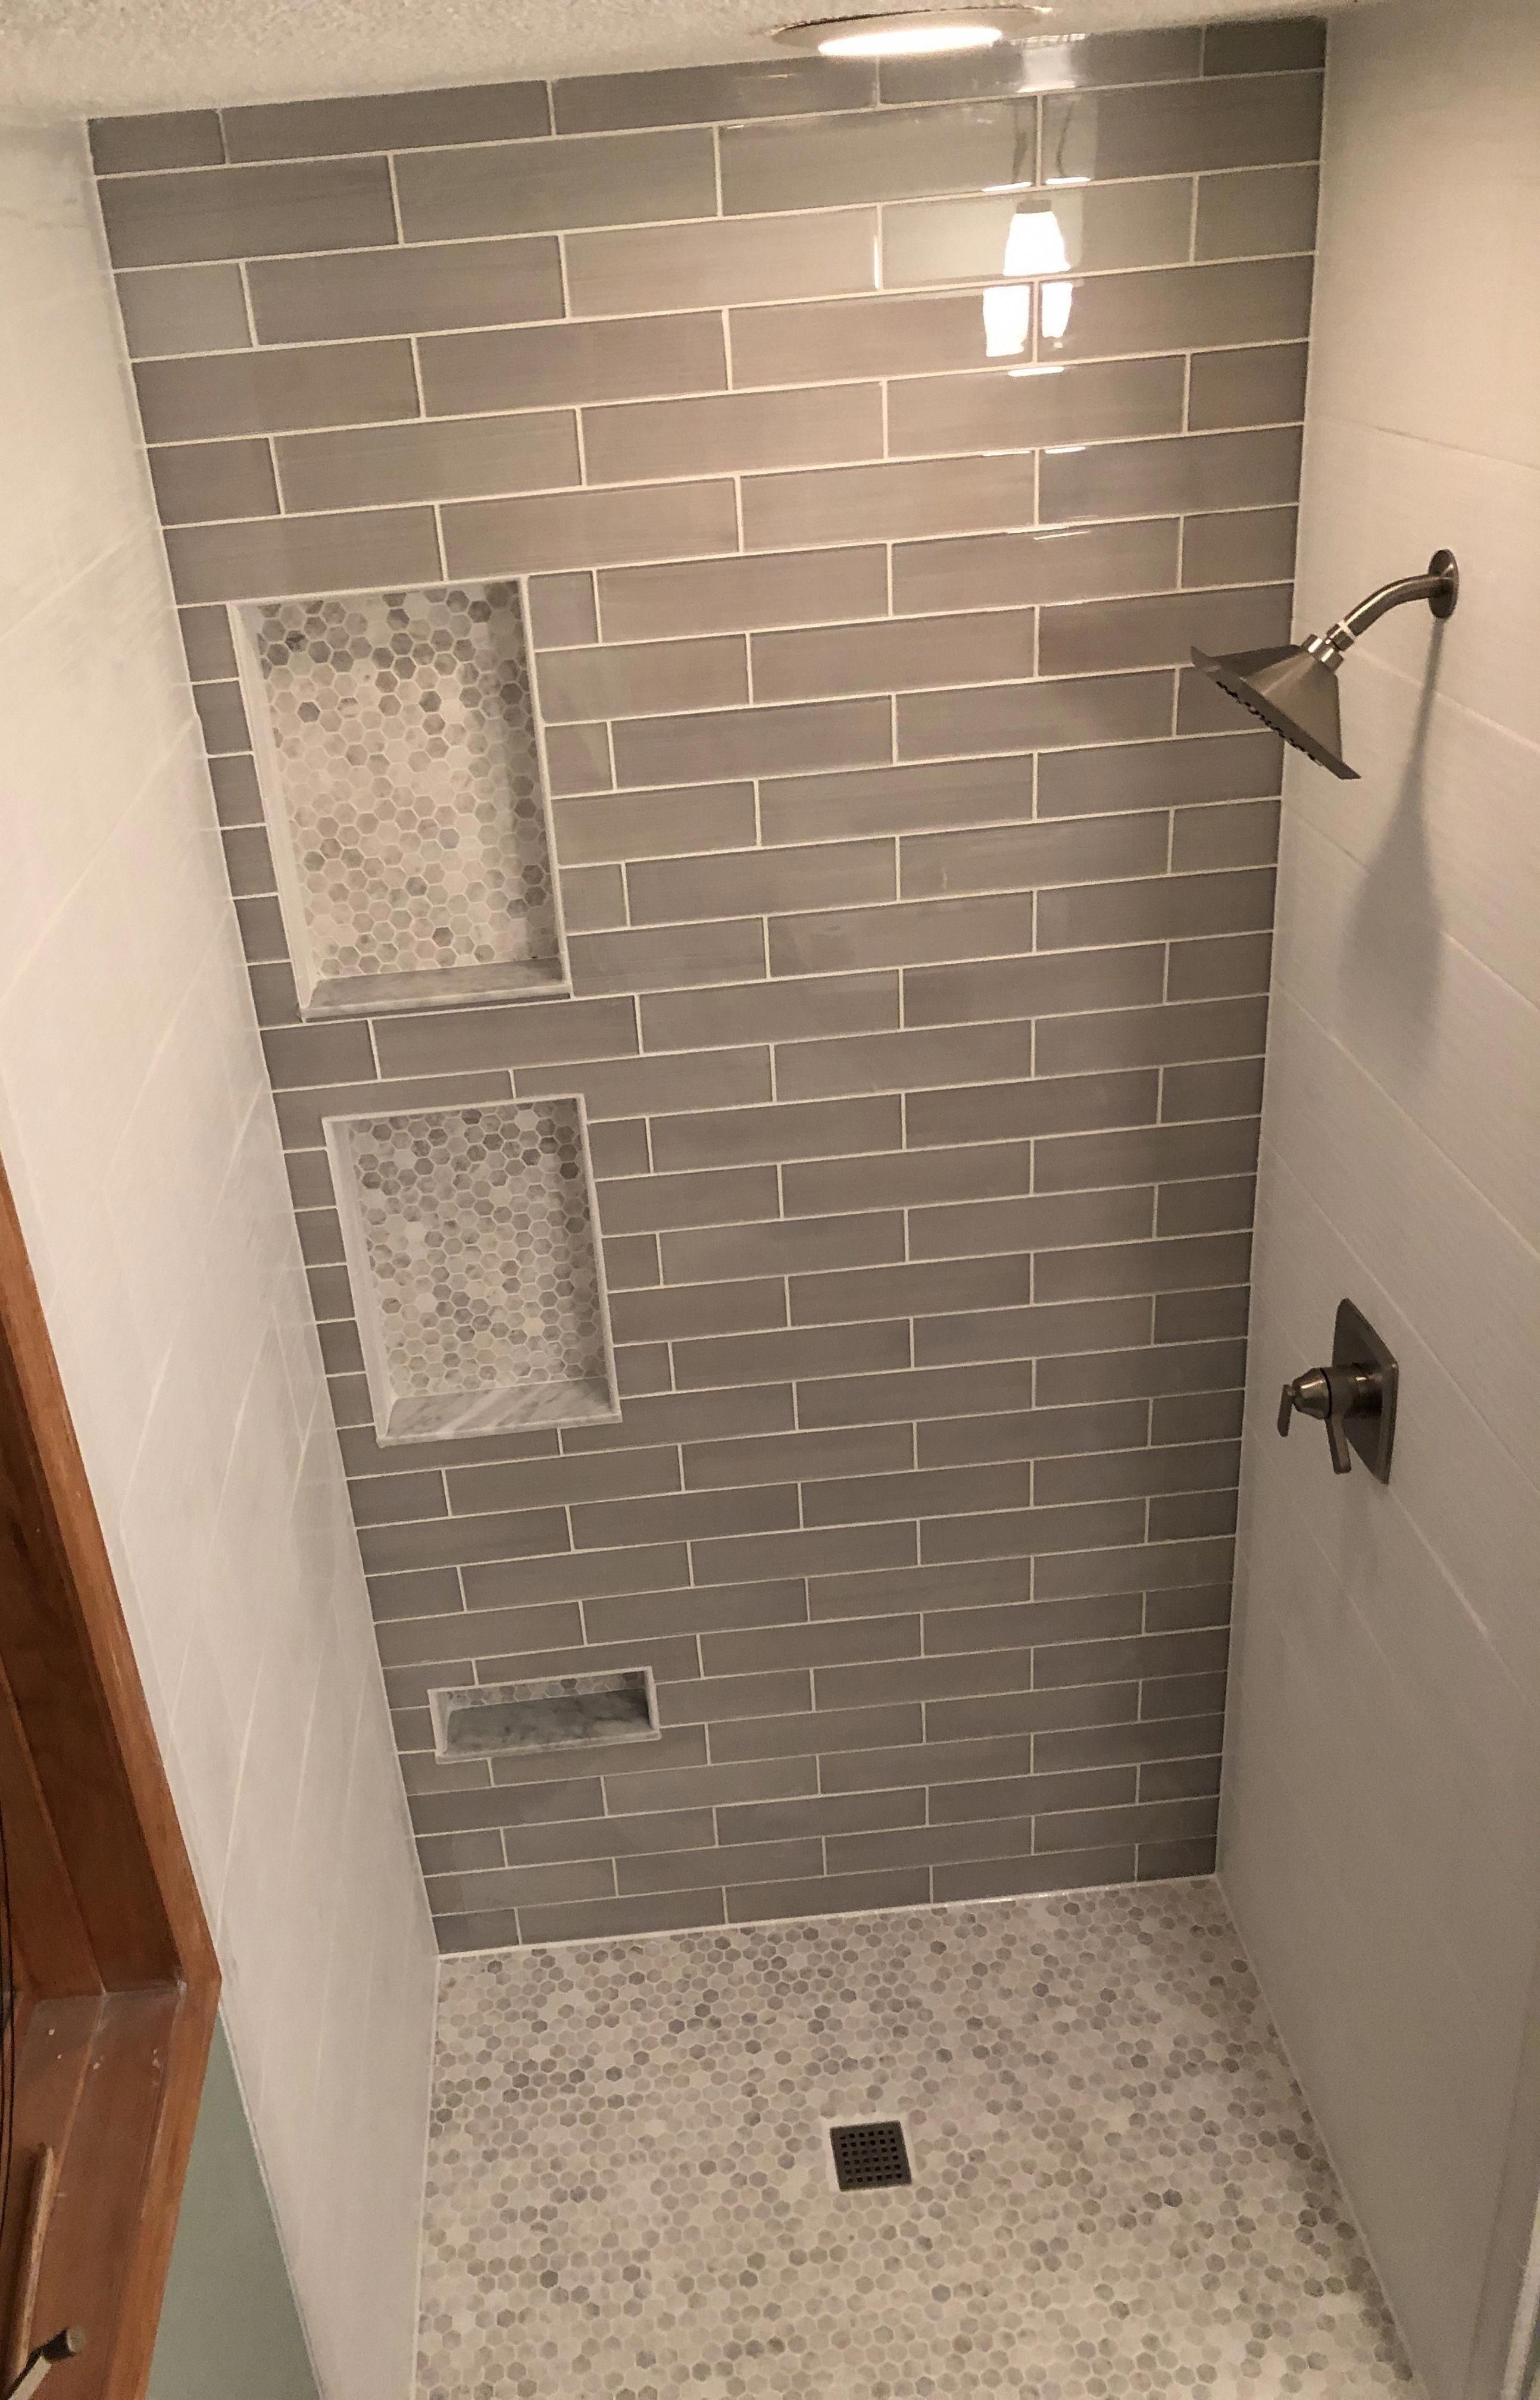 Advice Methods As Well As Manual When It Comes To Getting The Very Best Result And Also Making Bathroom Tile Designs Bathrooms Remodel Small Bathroom Remodel Bathroom restoration ideas gif